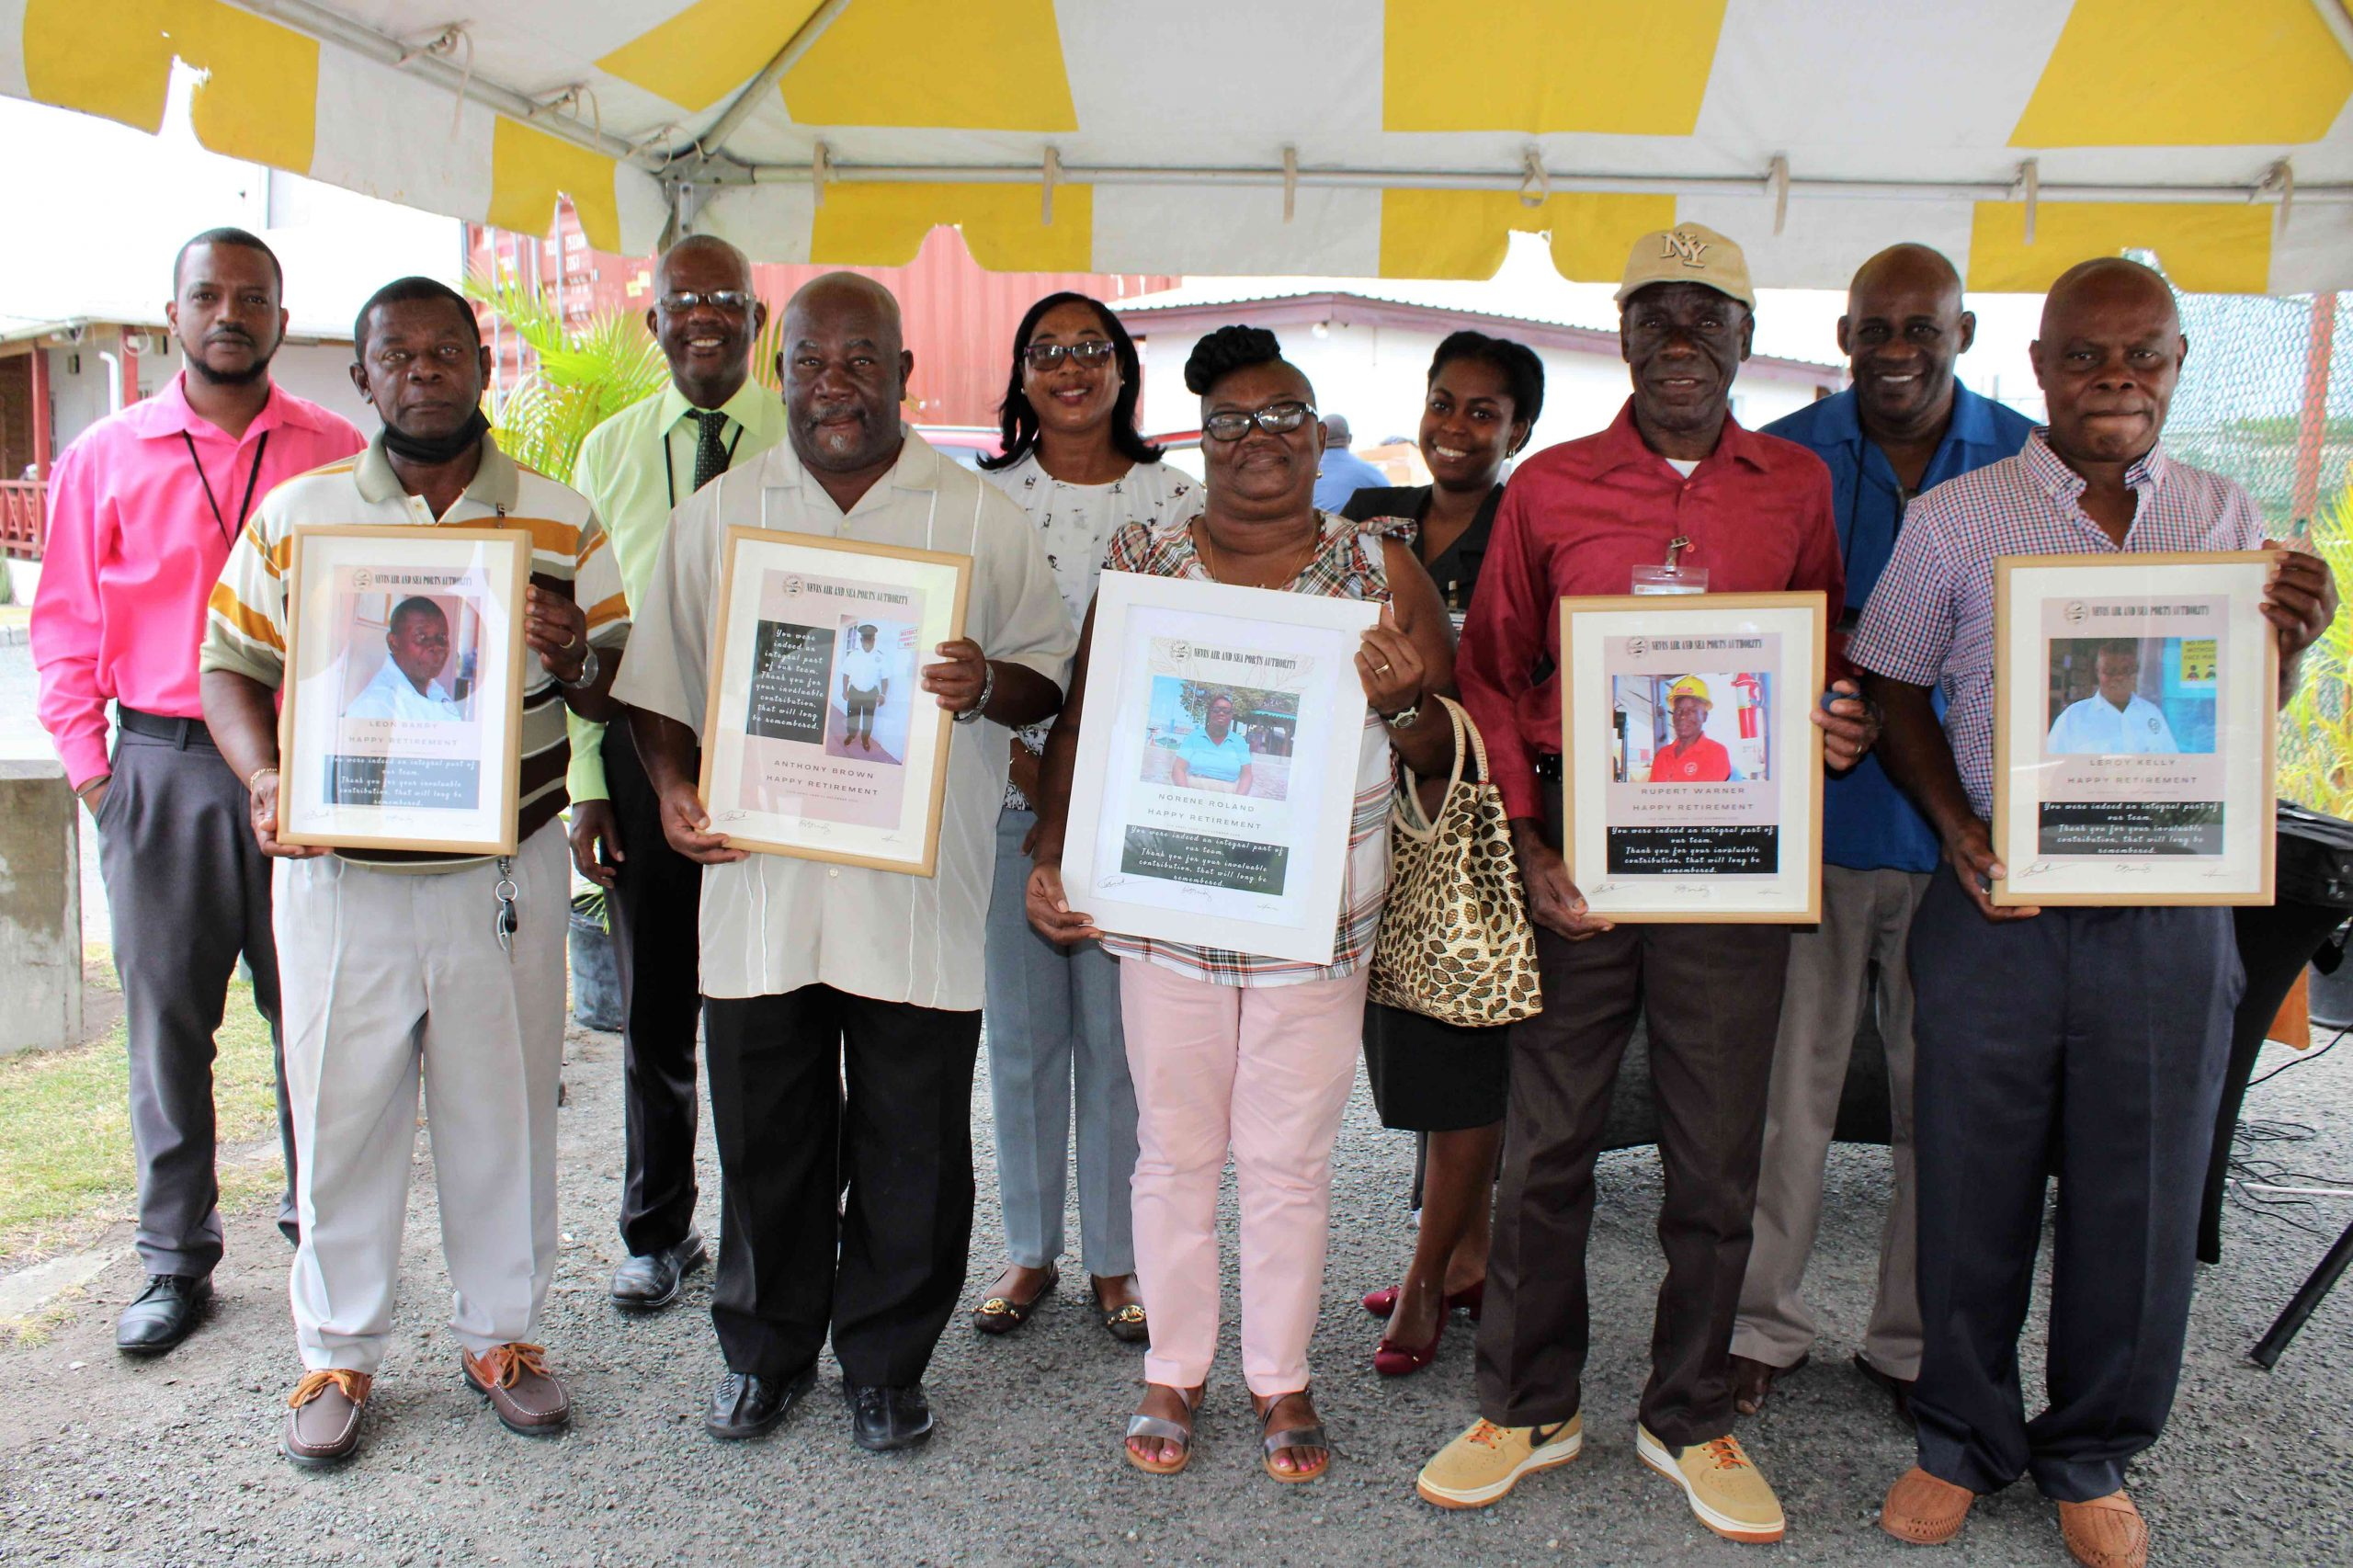 Front row (l-r) Retirees from the Nevis Air & Sea Ports Authority at a ceremony to honour them at Long Point on March 31, 2021 - Mr. Leon Barry; Mr. Anthony Brown; Mrs. Noren Roland; Mr. Rupert Warner; and Mr. Leroy Kelly with officials from the authority - back row (l-r) Mr. Kenyata Warner, Operations Manager at the Charlestown Sea Port; Mr. Oral Brandy, General Manager of the Nevis Air & Sea Ports Authority; Ms. Loretta France, Human Resource Supervisor; Ms. Joanne Flemming, Director of the Nevis Air & Sea Ports Authority Board; and Mr. Joseph Liburd, Chairman of the Board